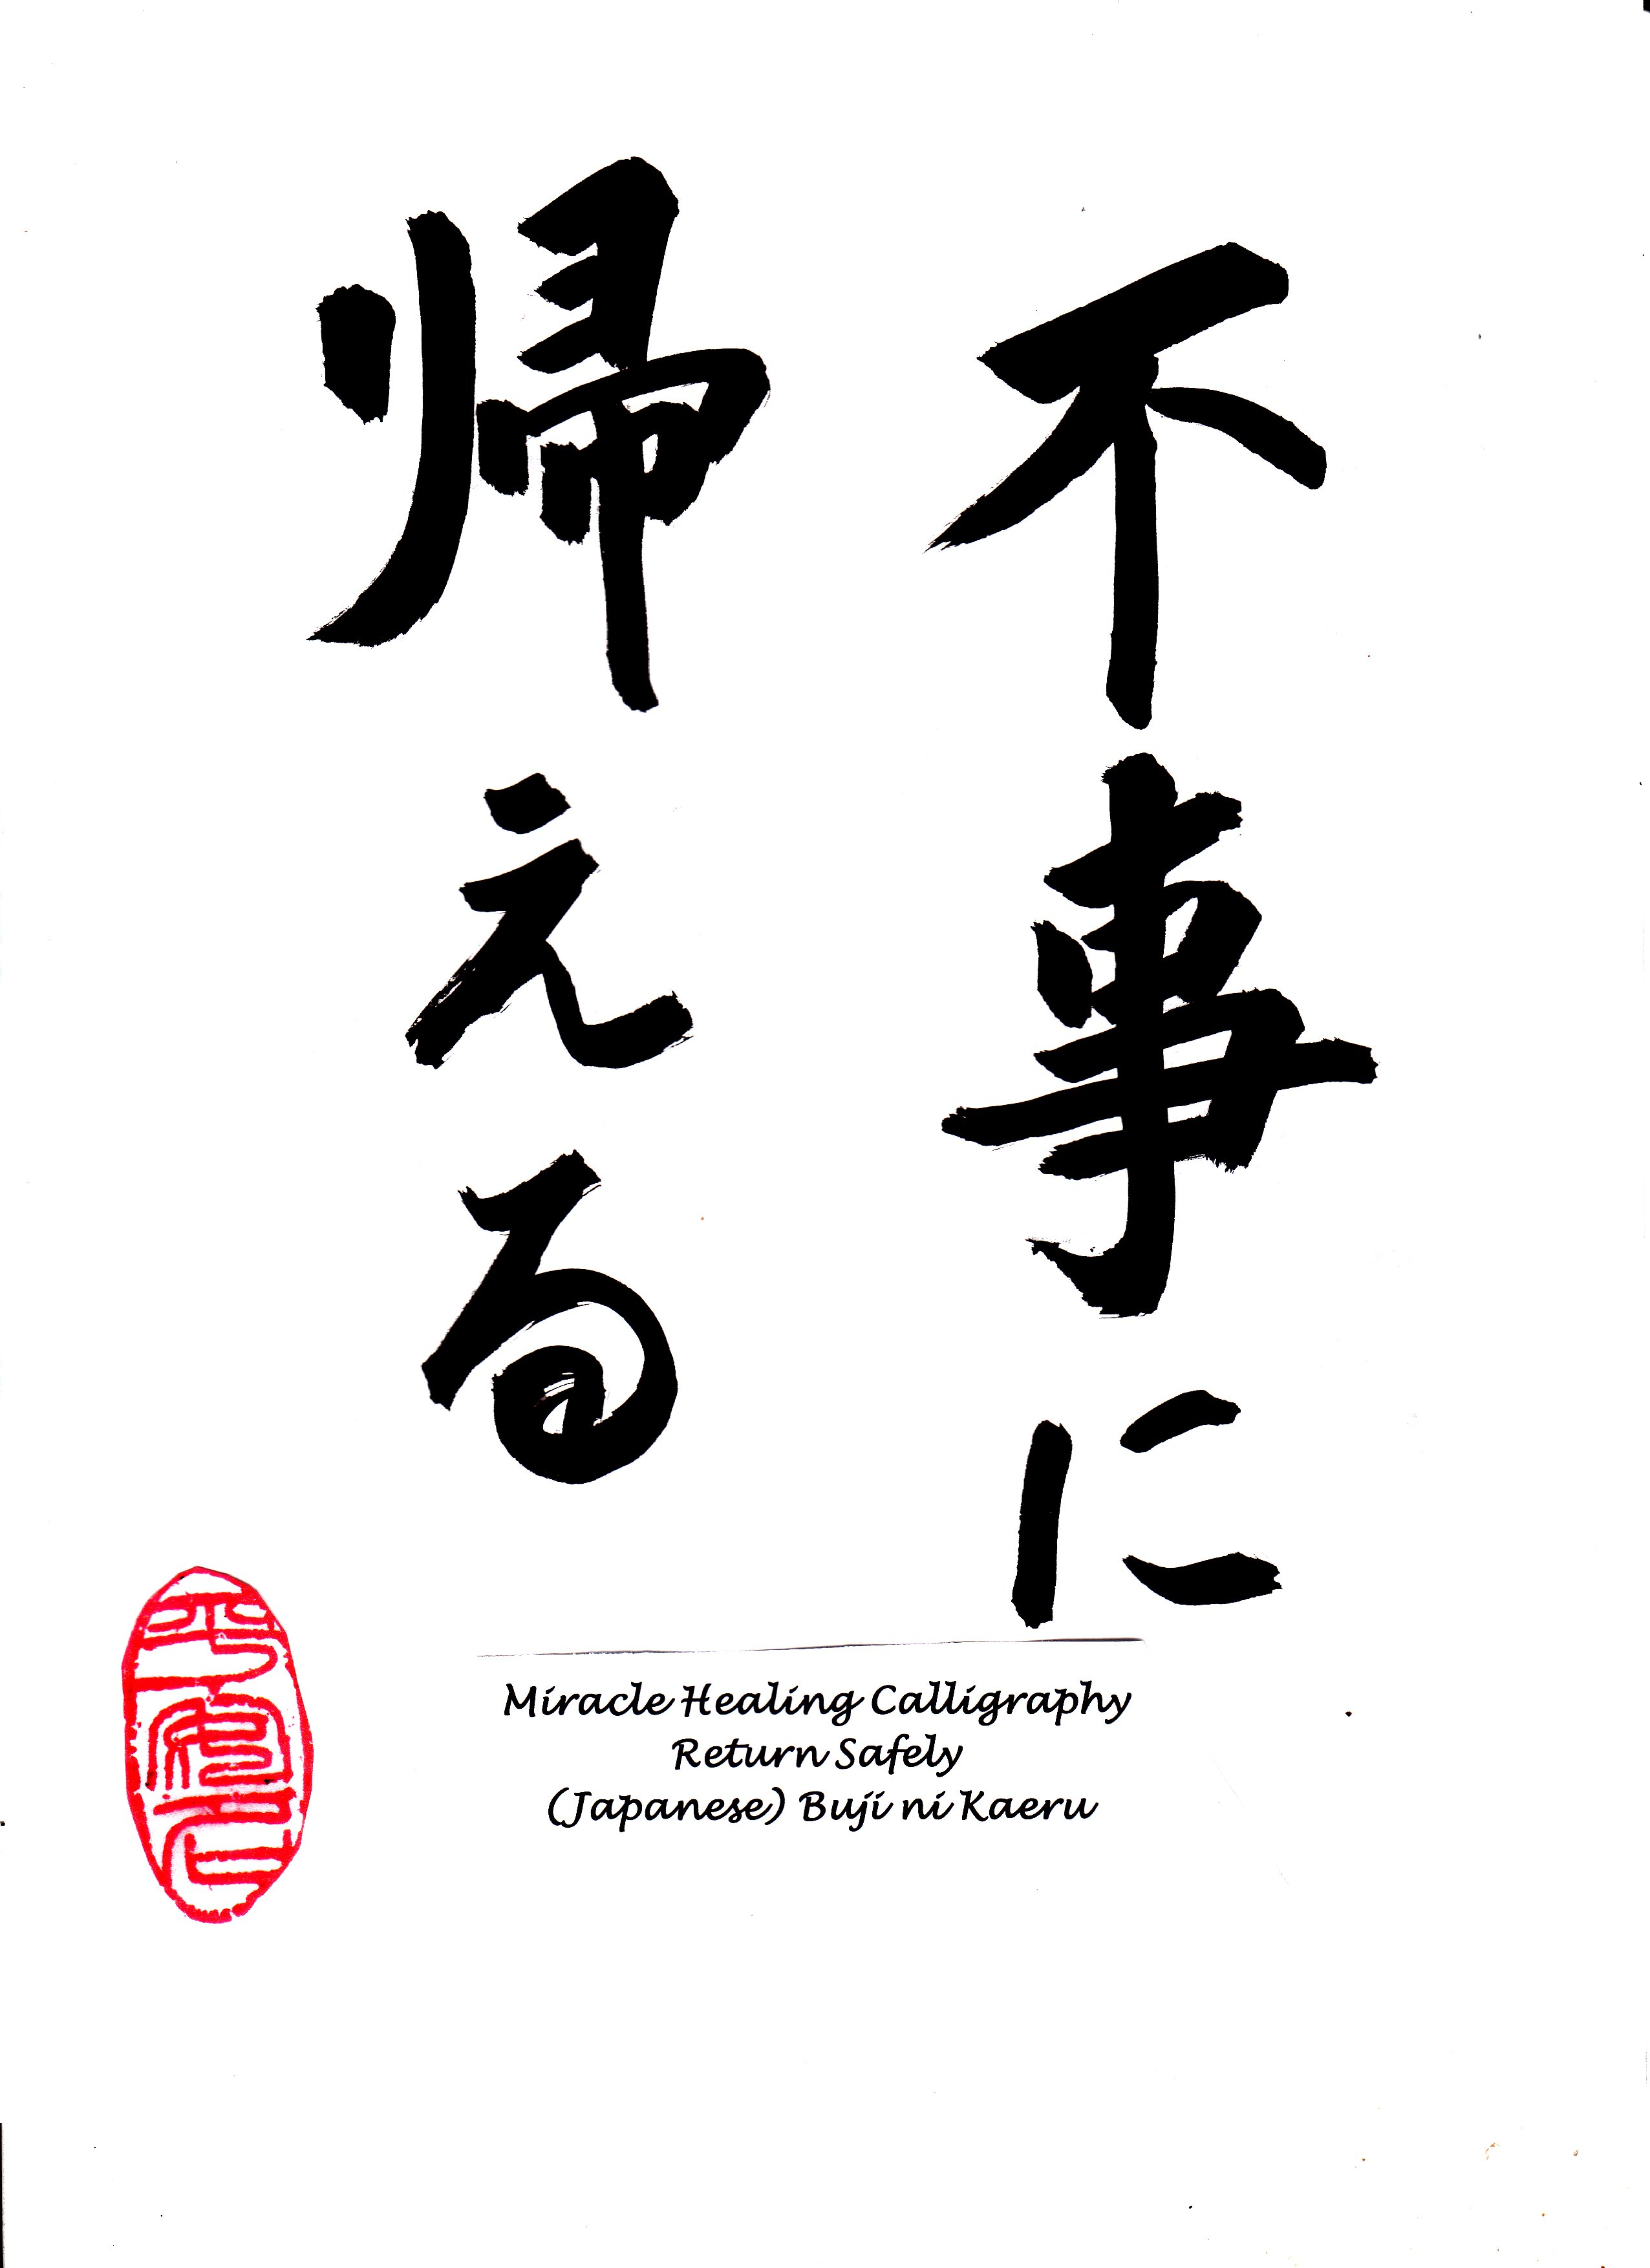 Miracle healing calligraphy return safely japanese